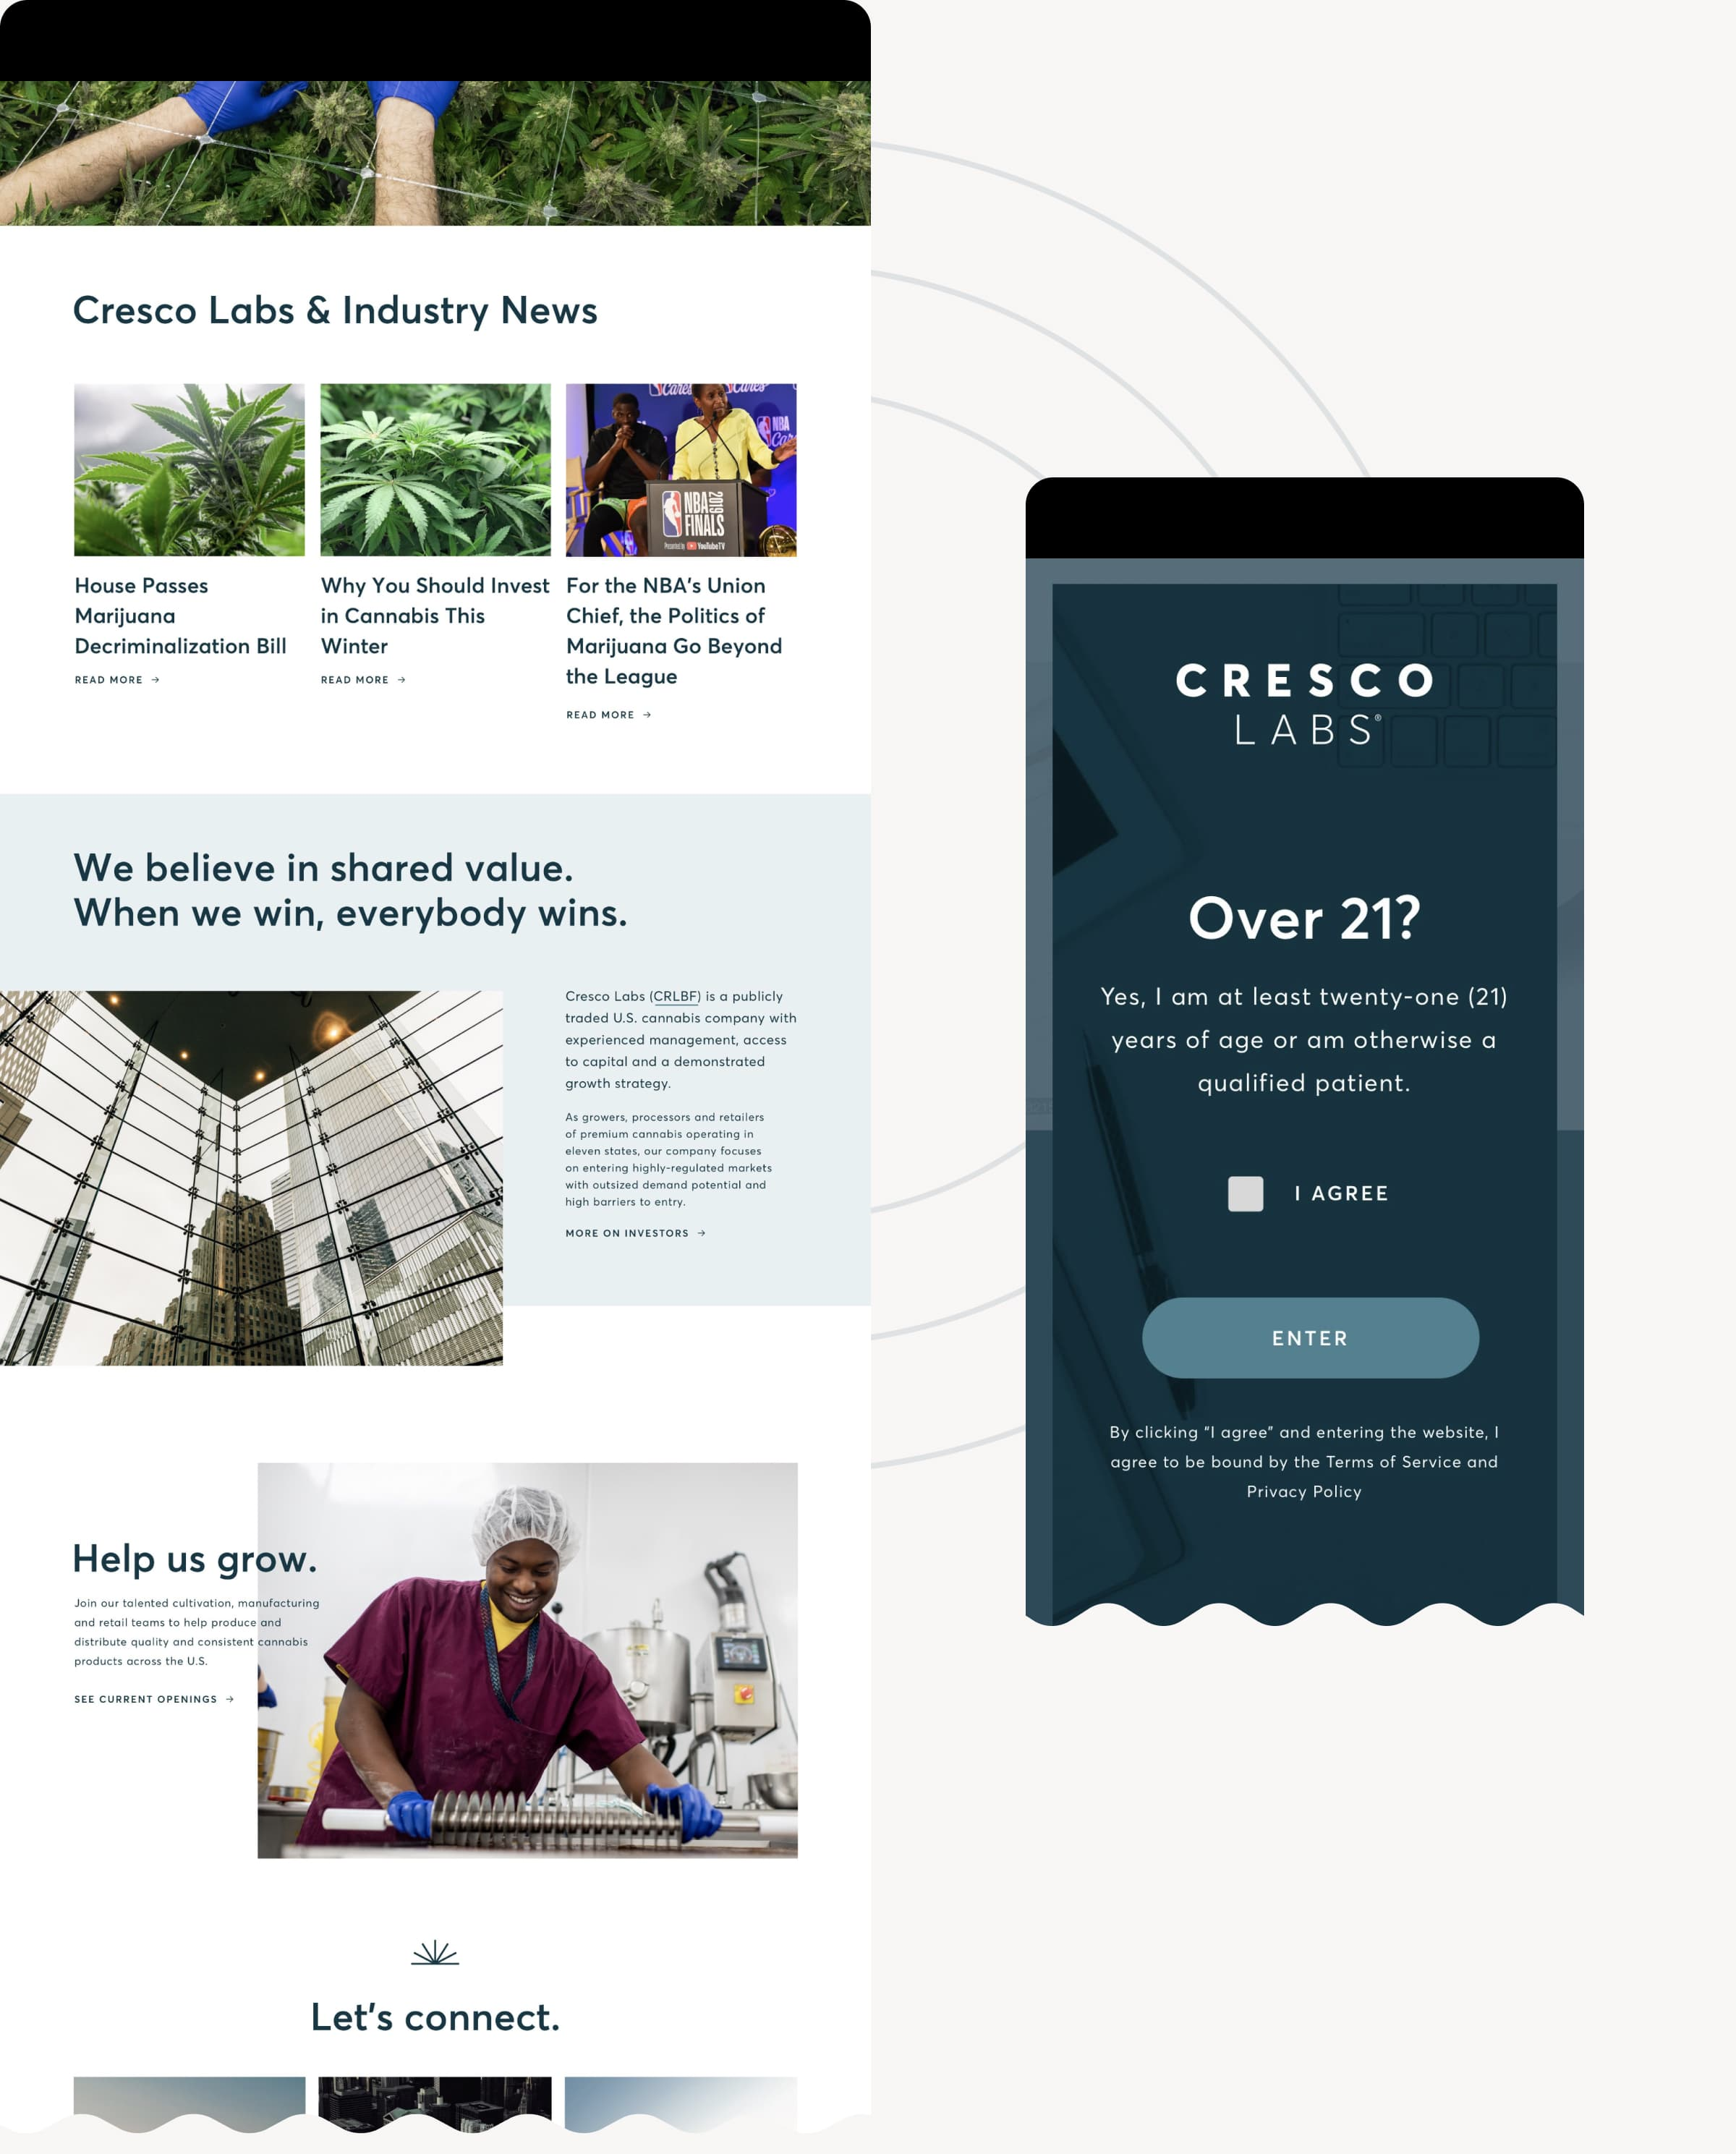 An image of Cresco Labs' home page, featuring the Press, Investors, and Careers sections of the website.